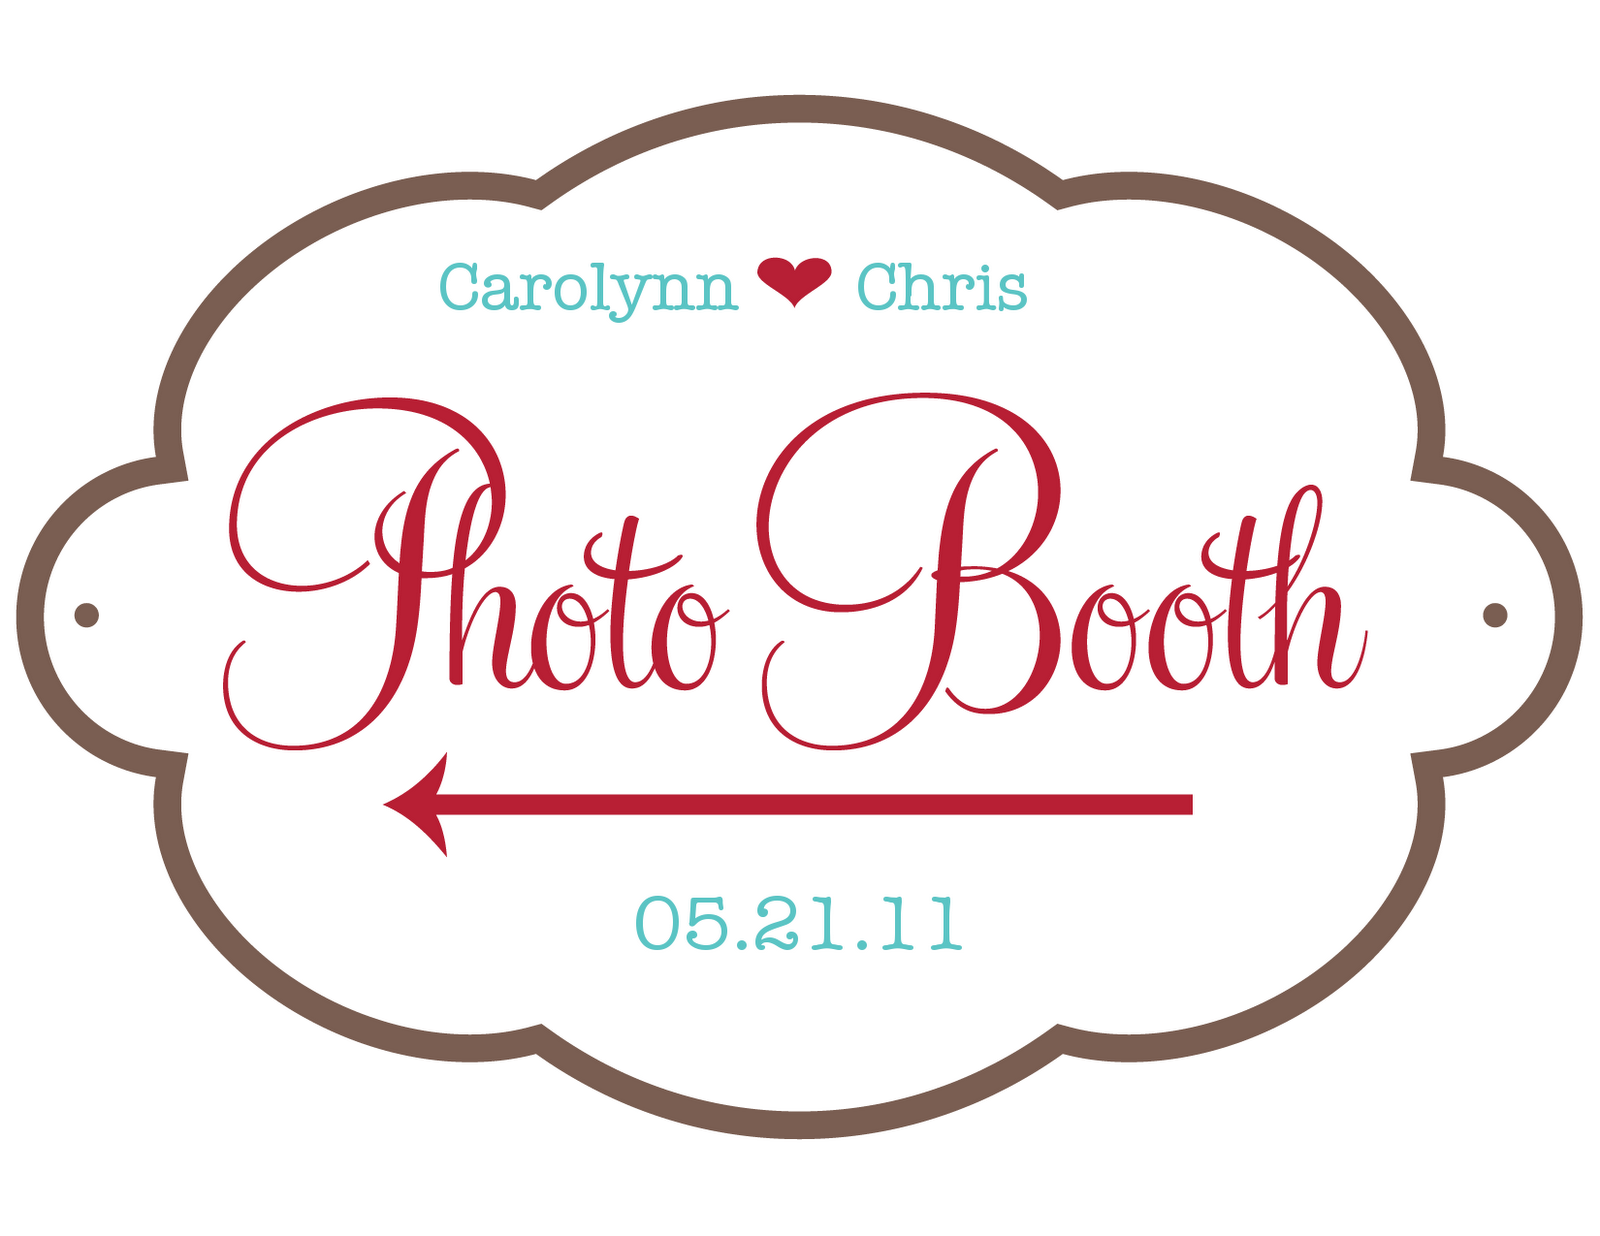 Chris and carolynn newlyweds free wedding graphics and templates for Wedding signs templates